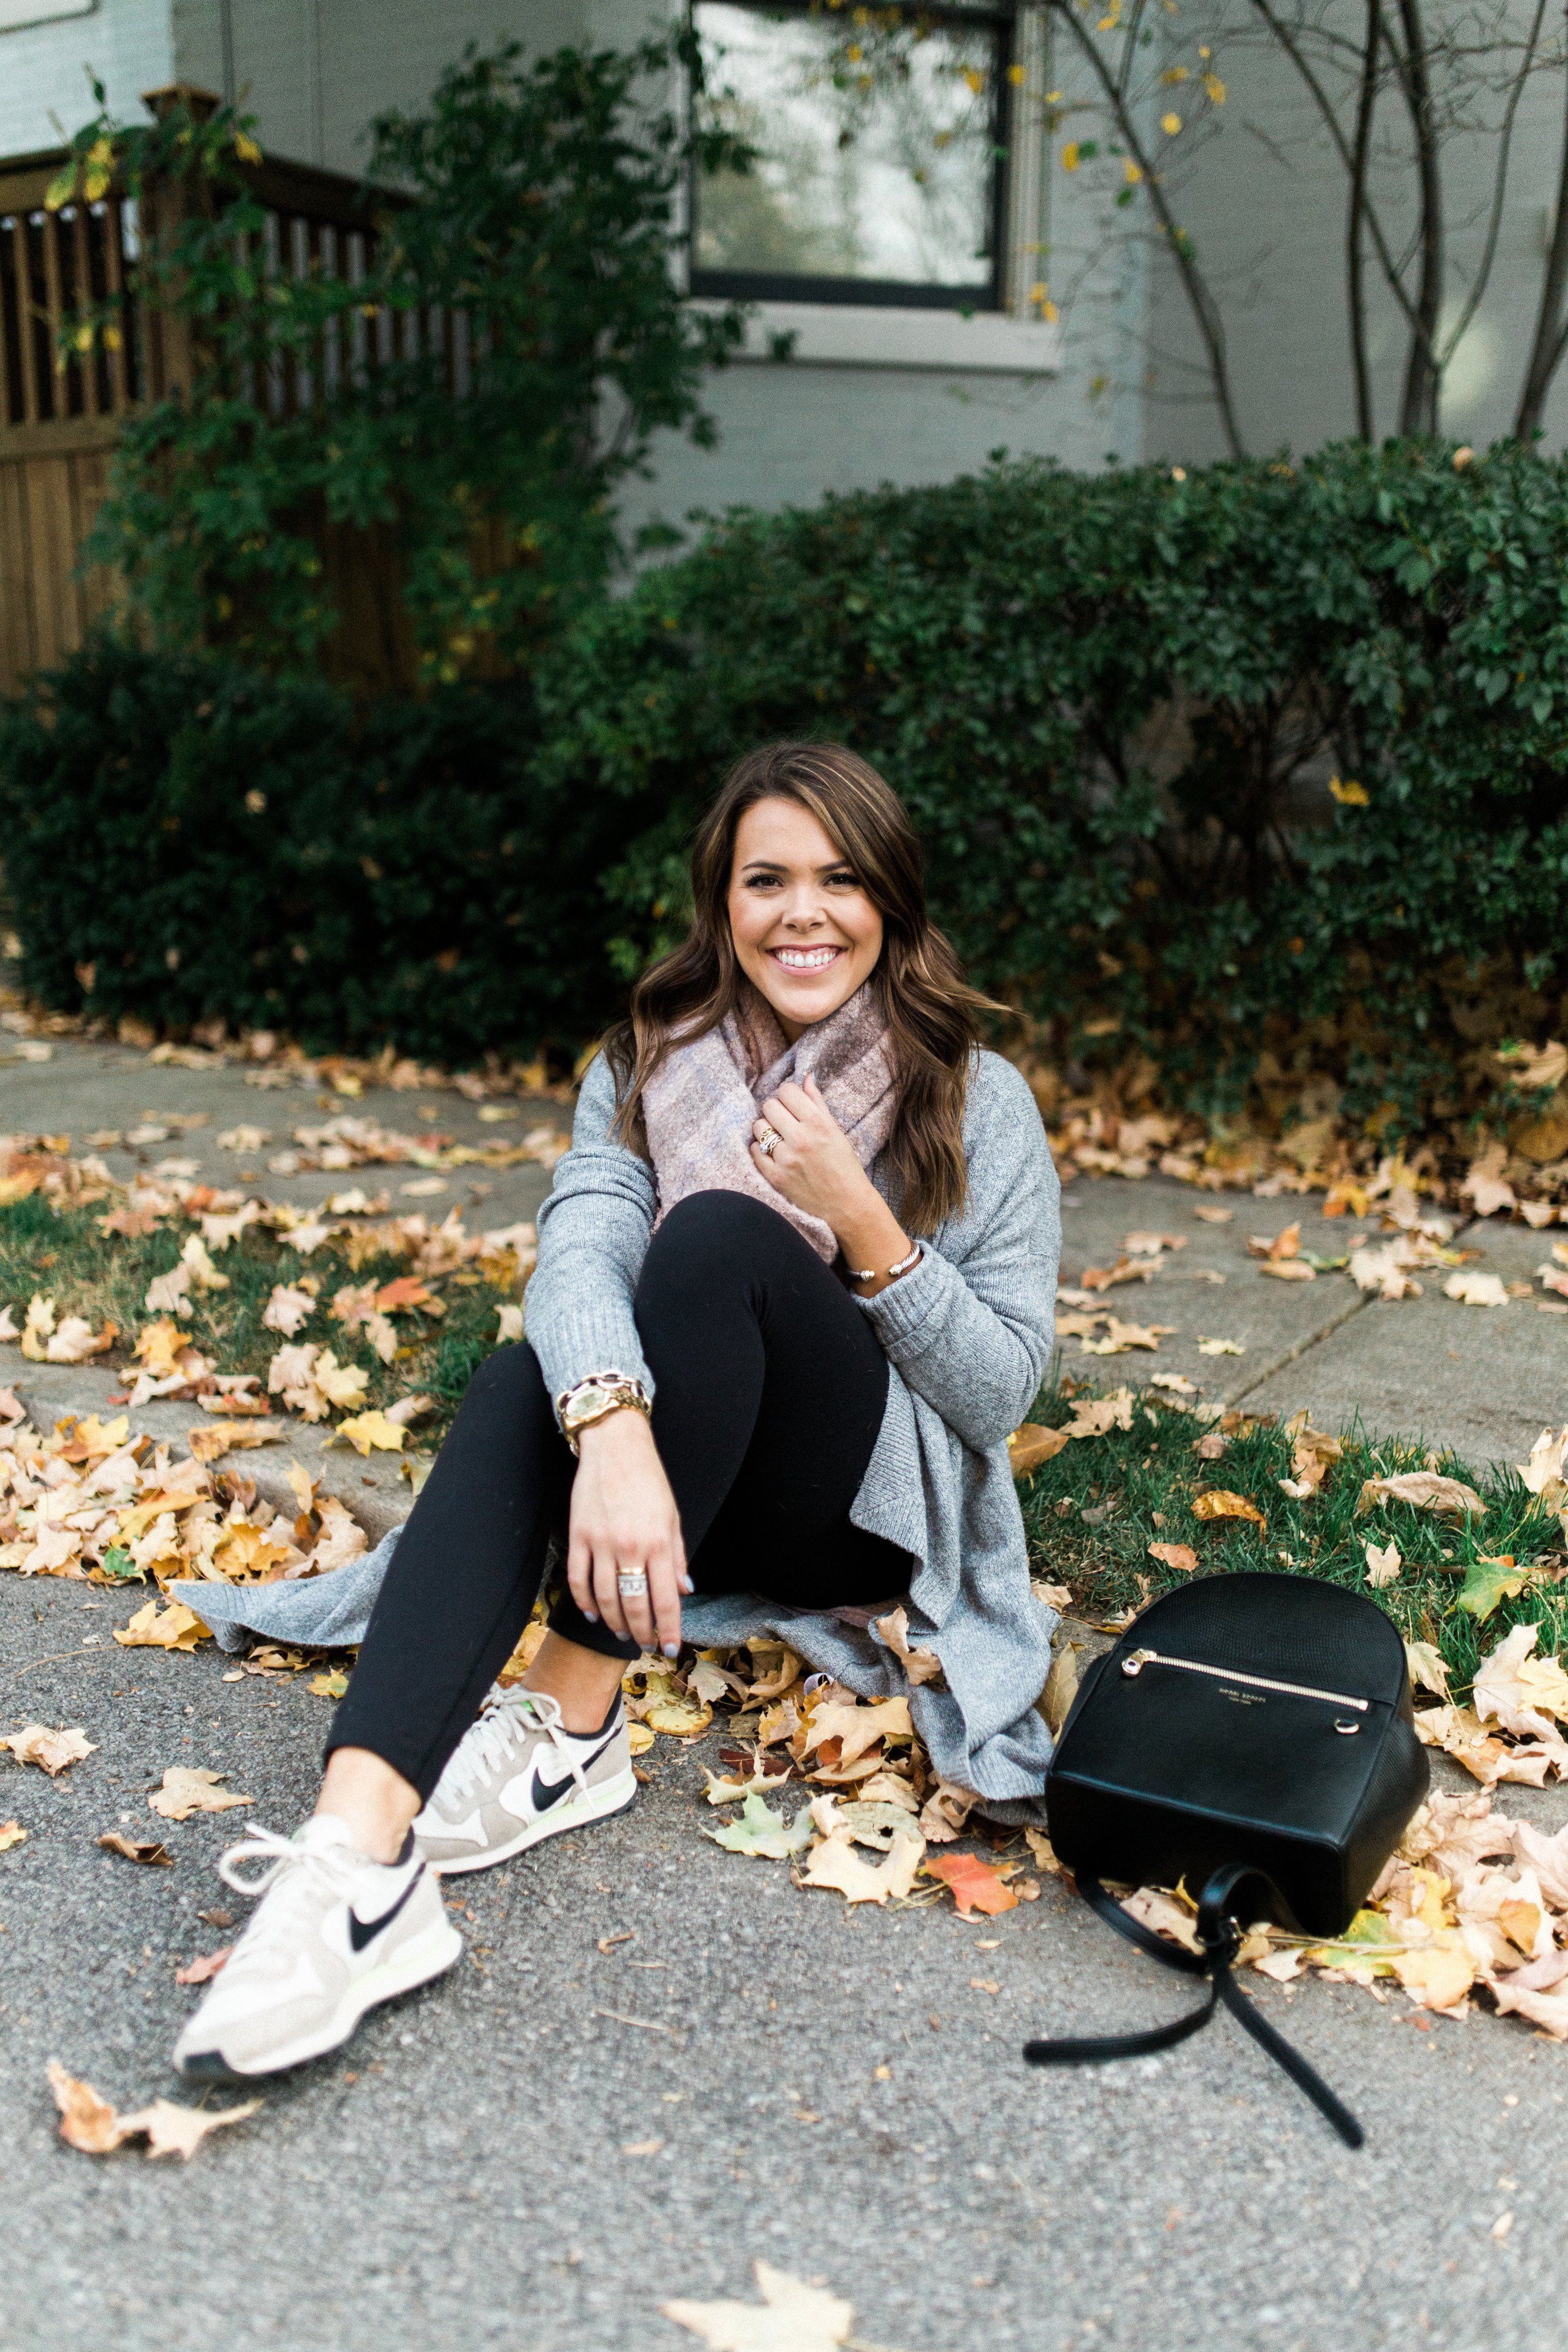 Outfits To Wear With Sneakers, Michael Kors Backpack, Silence + Noise